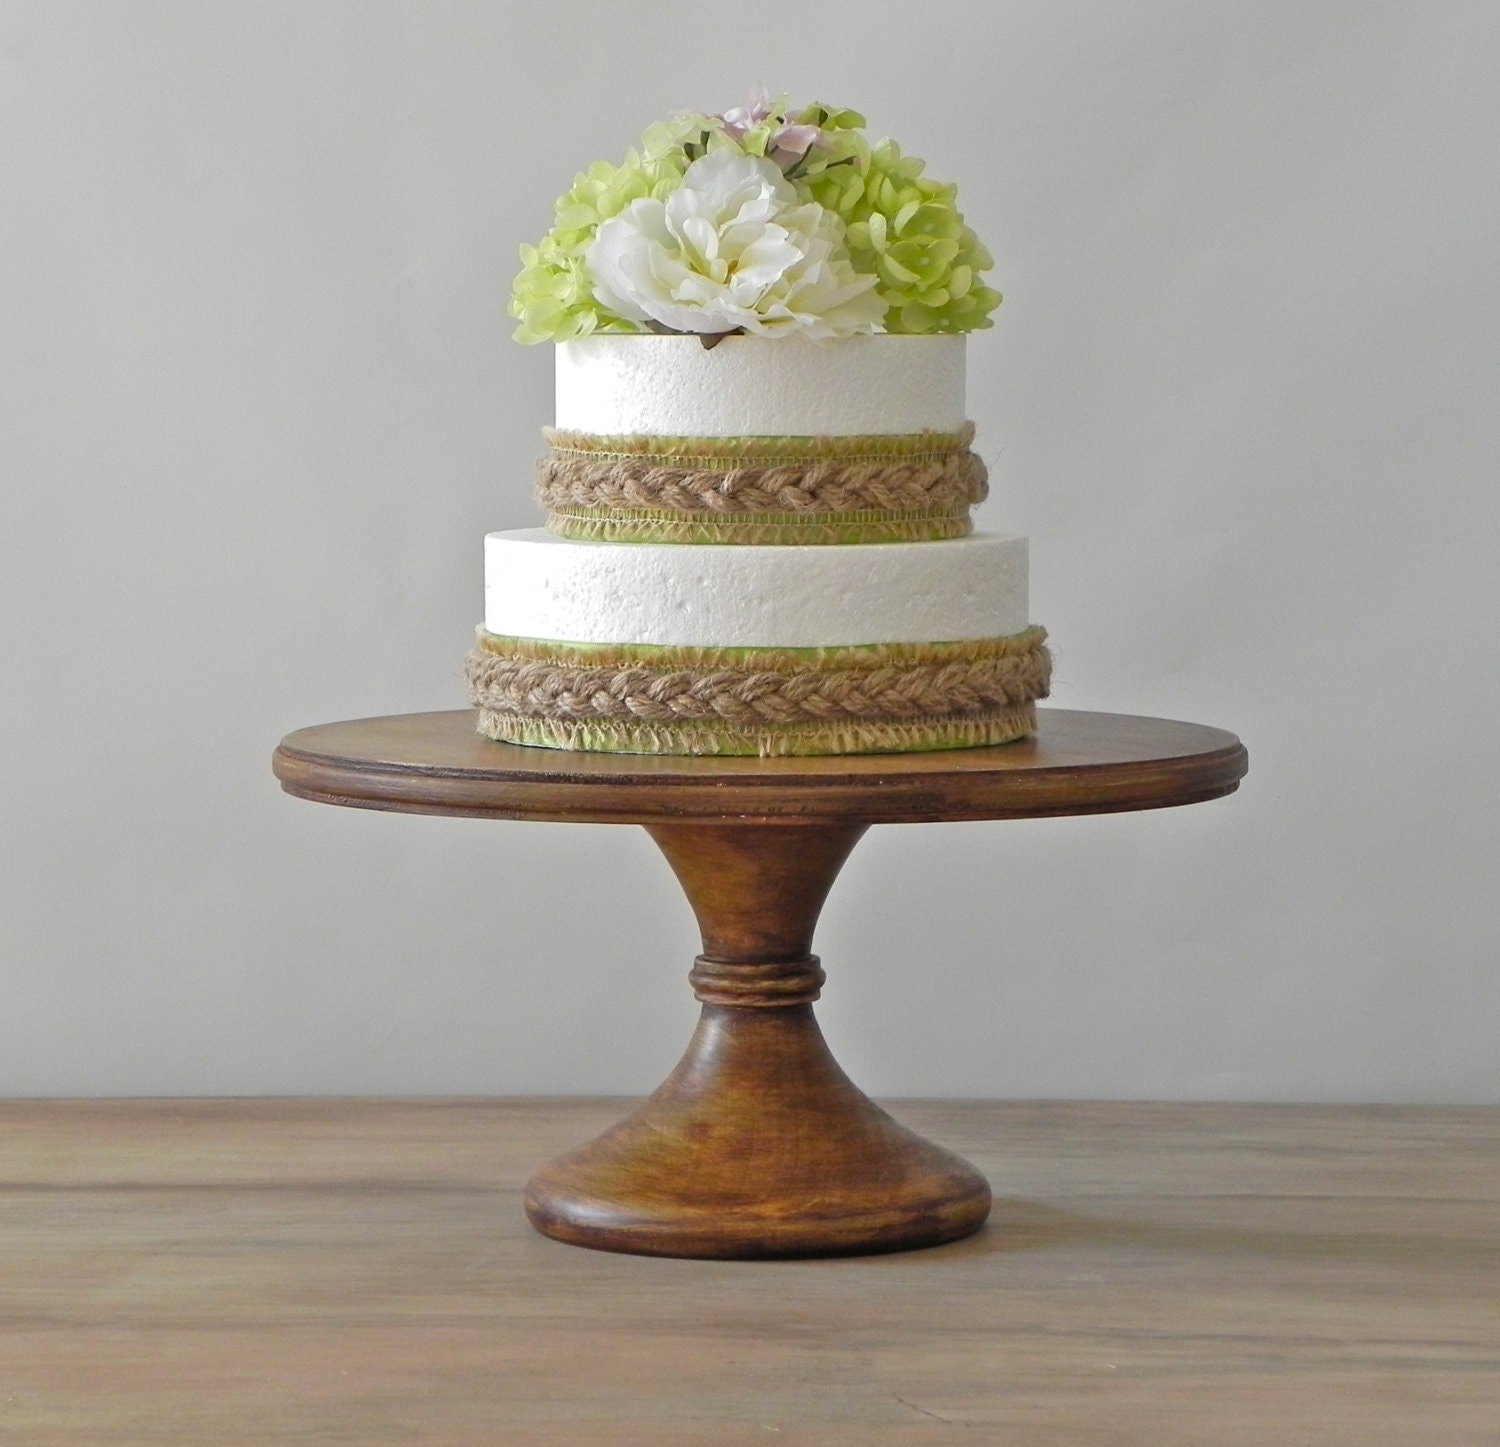 wooden wedding cake stand ireland 14 cake stand bling wedding cake stand drum 14 27603